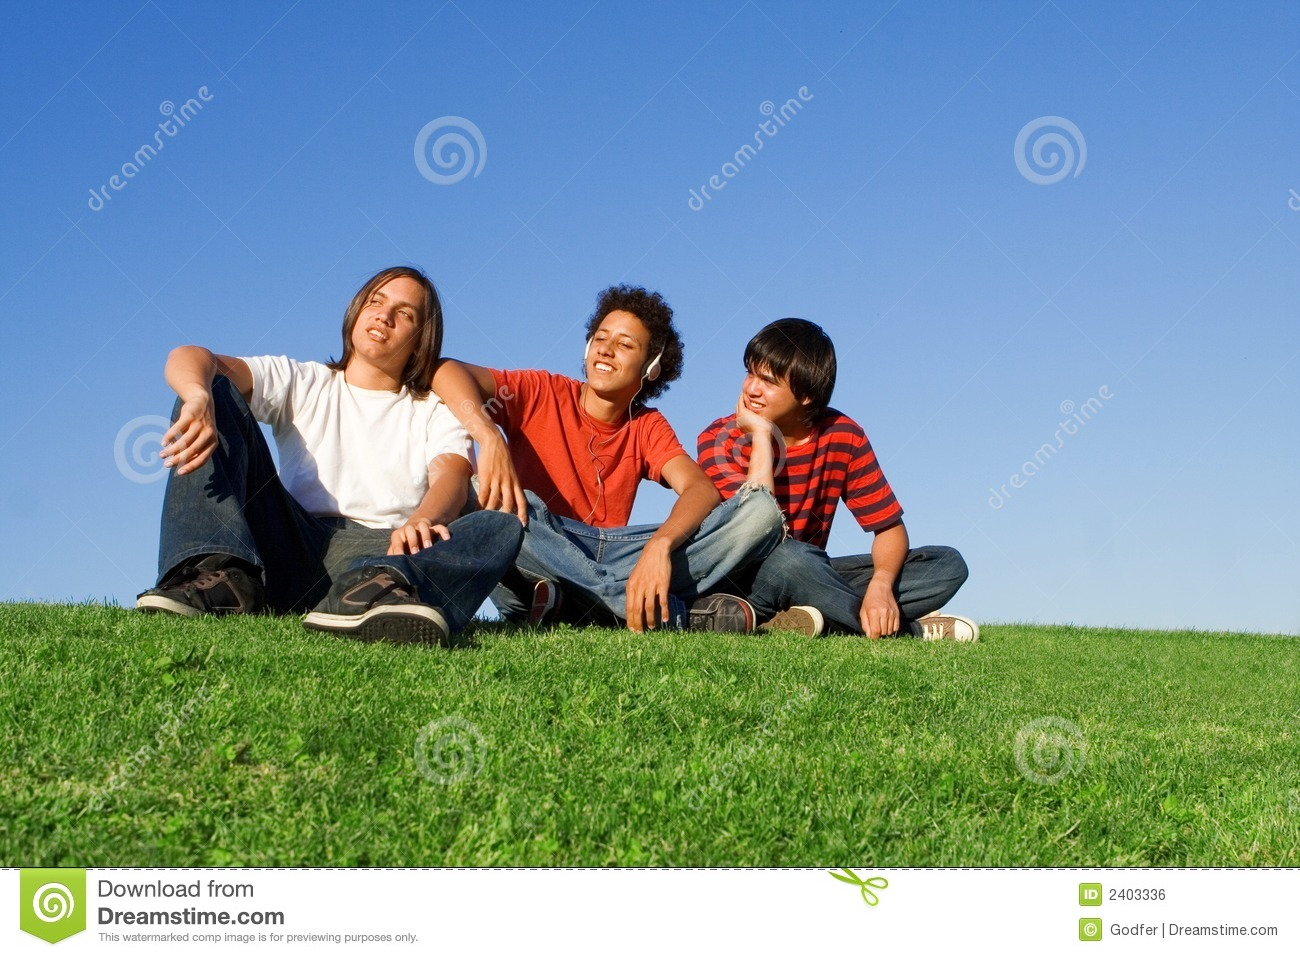 youth chilling out royalty free stock image image 2403336